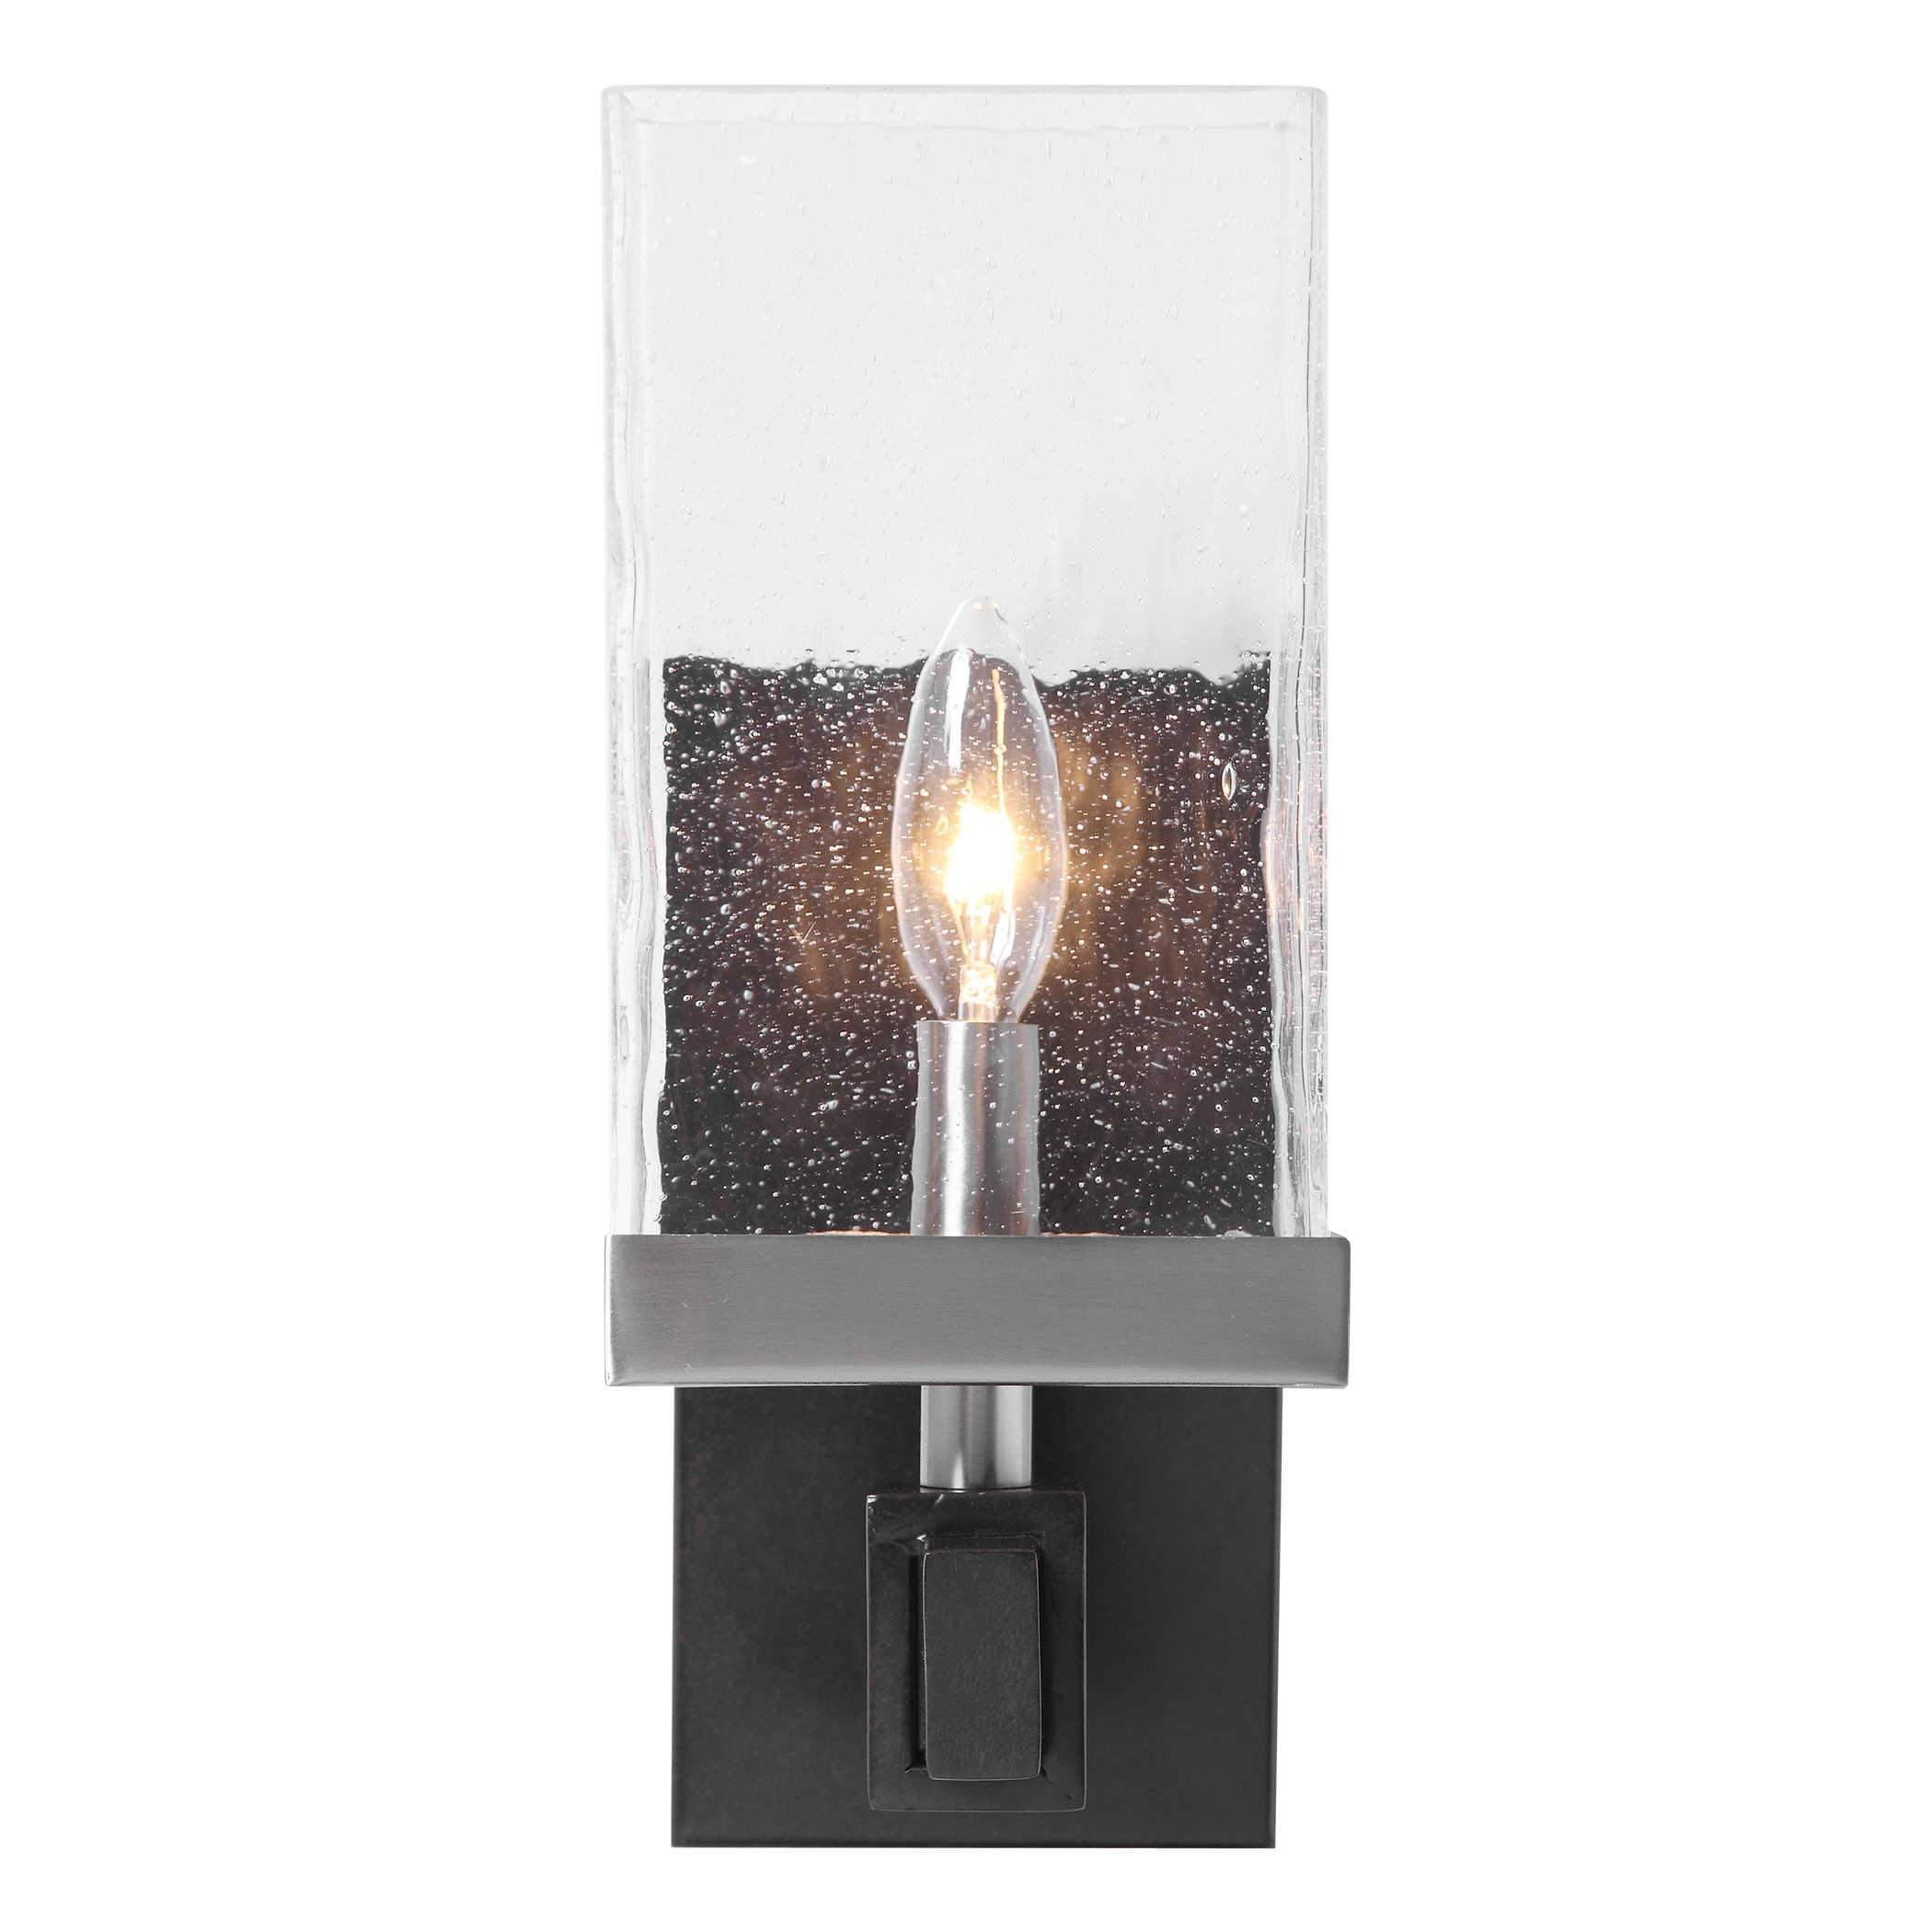 Uttermost Lighting Humboldt, 1 Lt Sconce